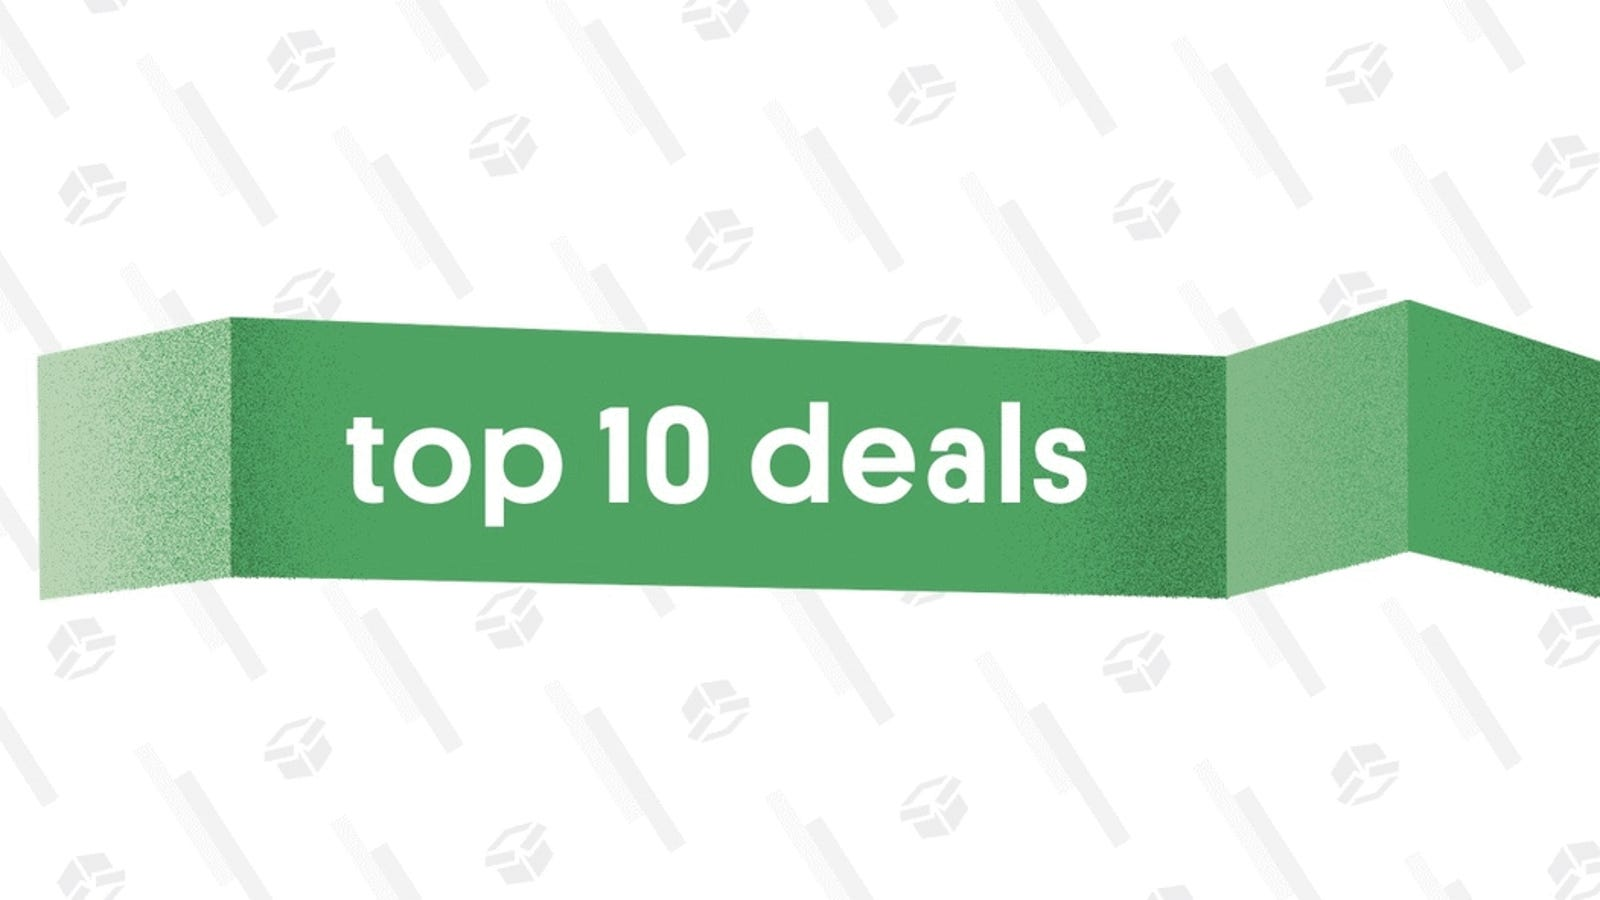 photo of The 10 Best Deals of March 15, 2019 image